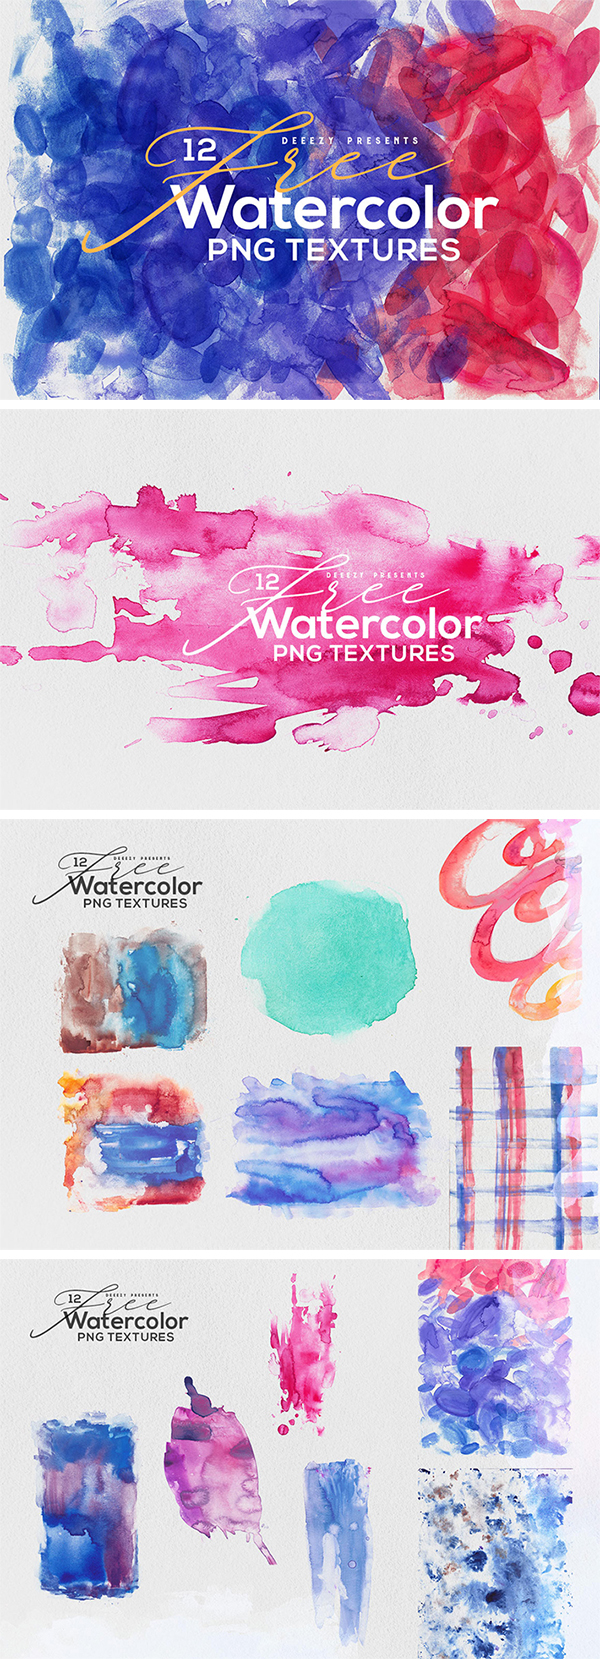 Freebie : 12 Elegant Abstract Watercolor Textures For Designers (PNG)